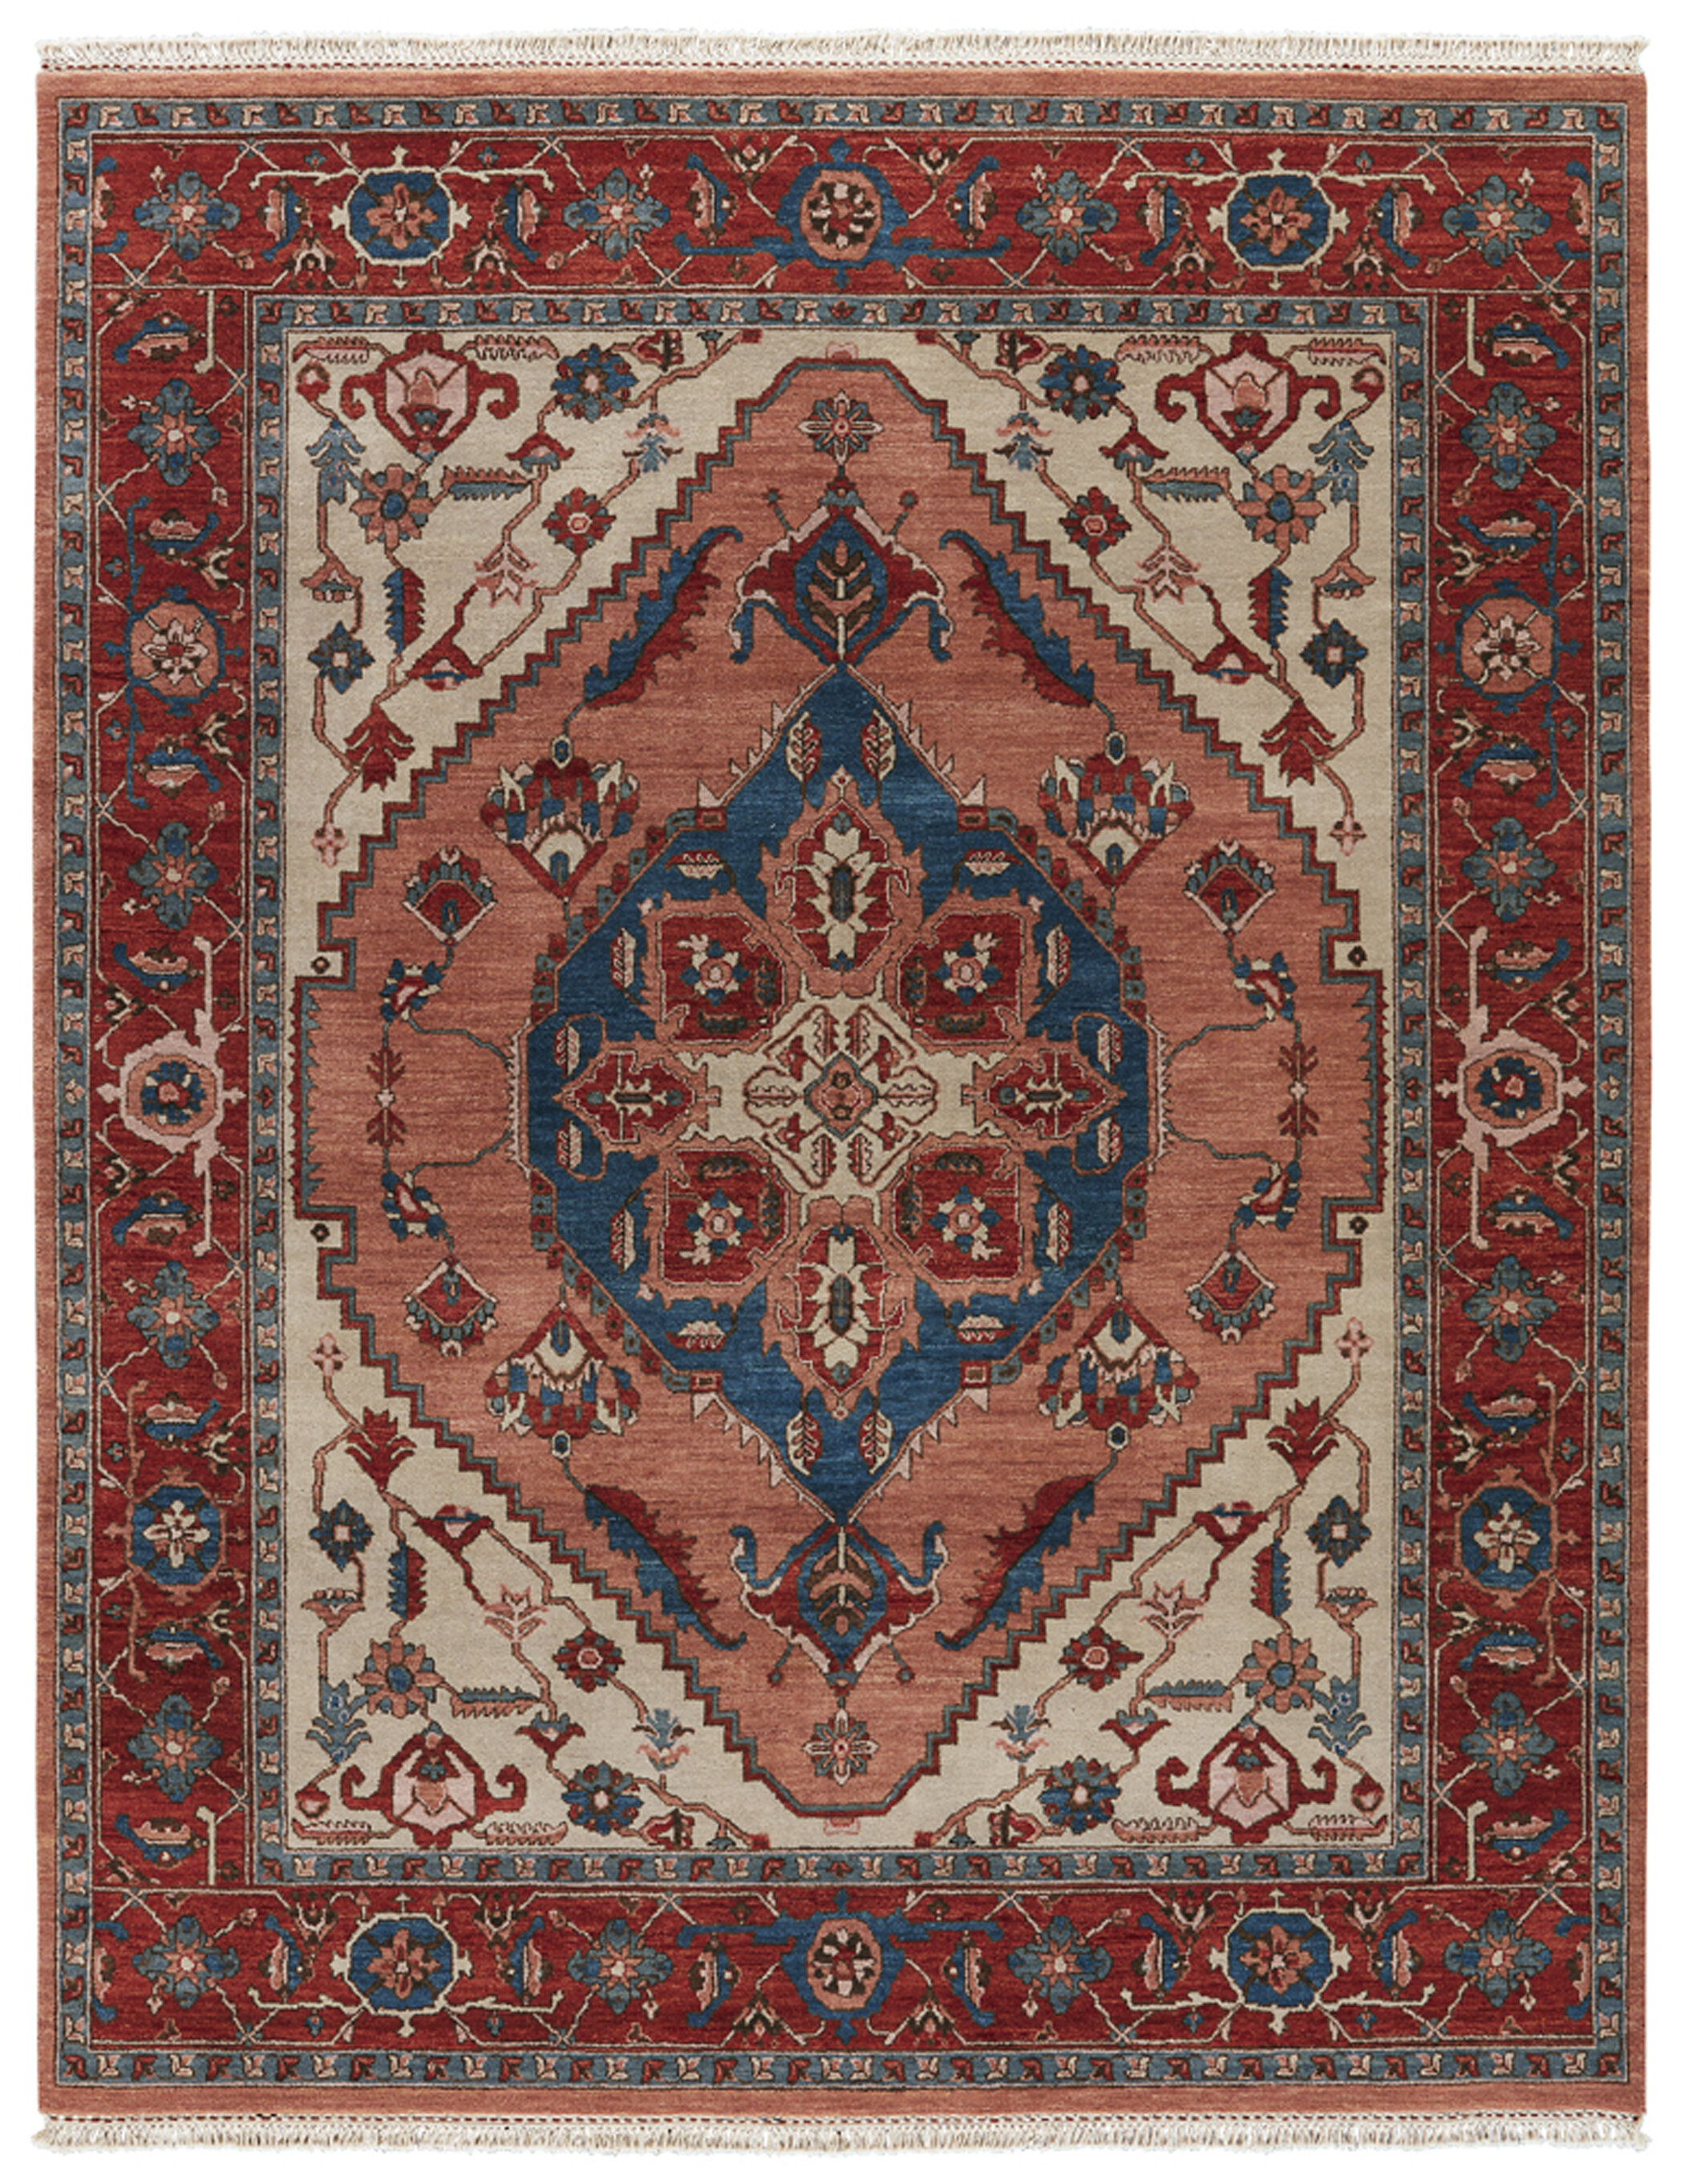 Jaipurliving Up Town By Artemis Avon Hand Knotted Red Ivory Area Rug Perigold